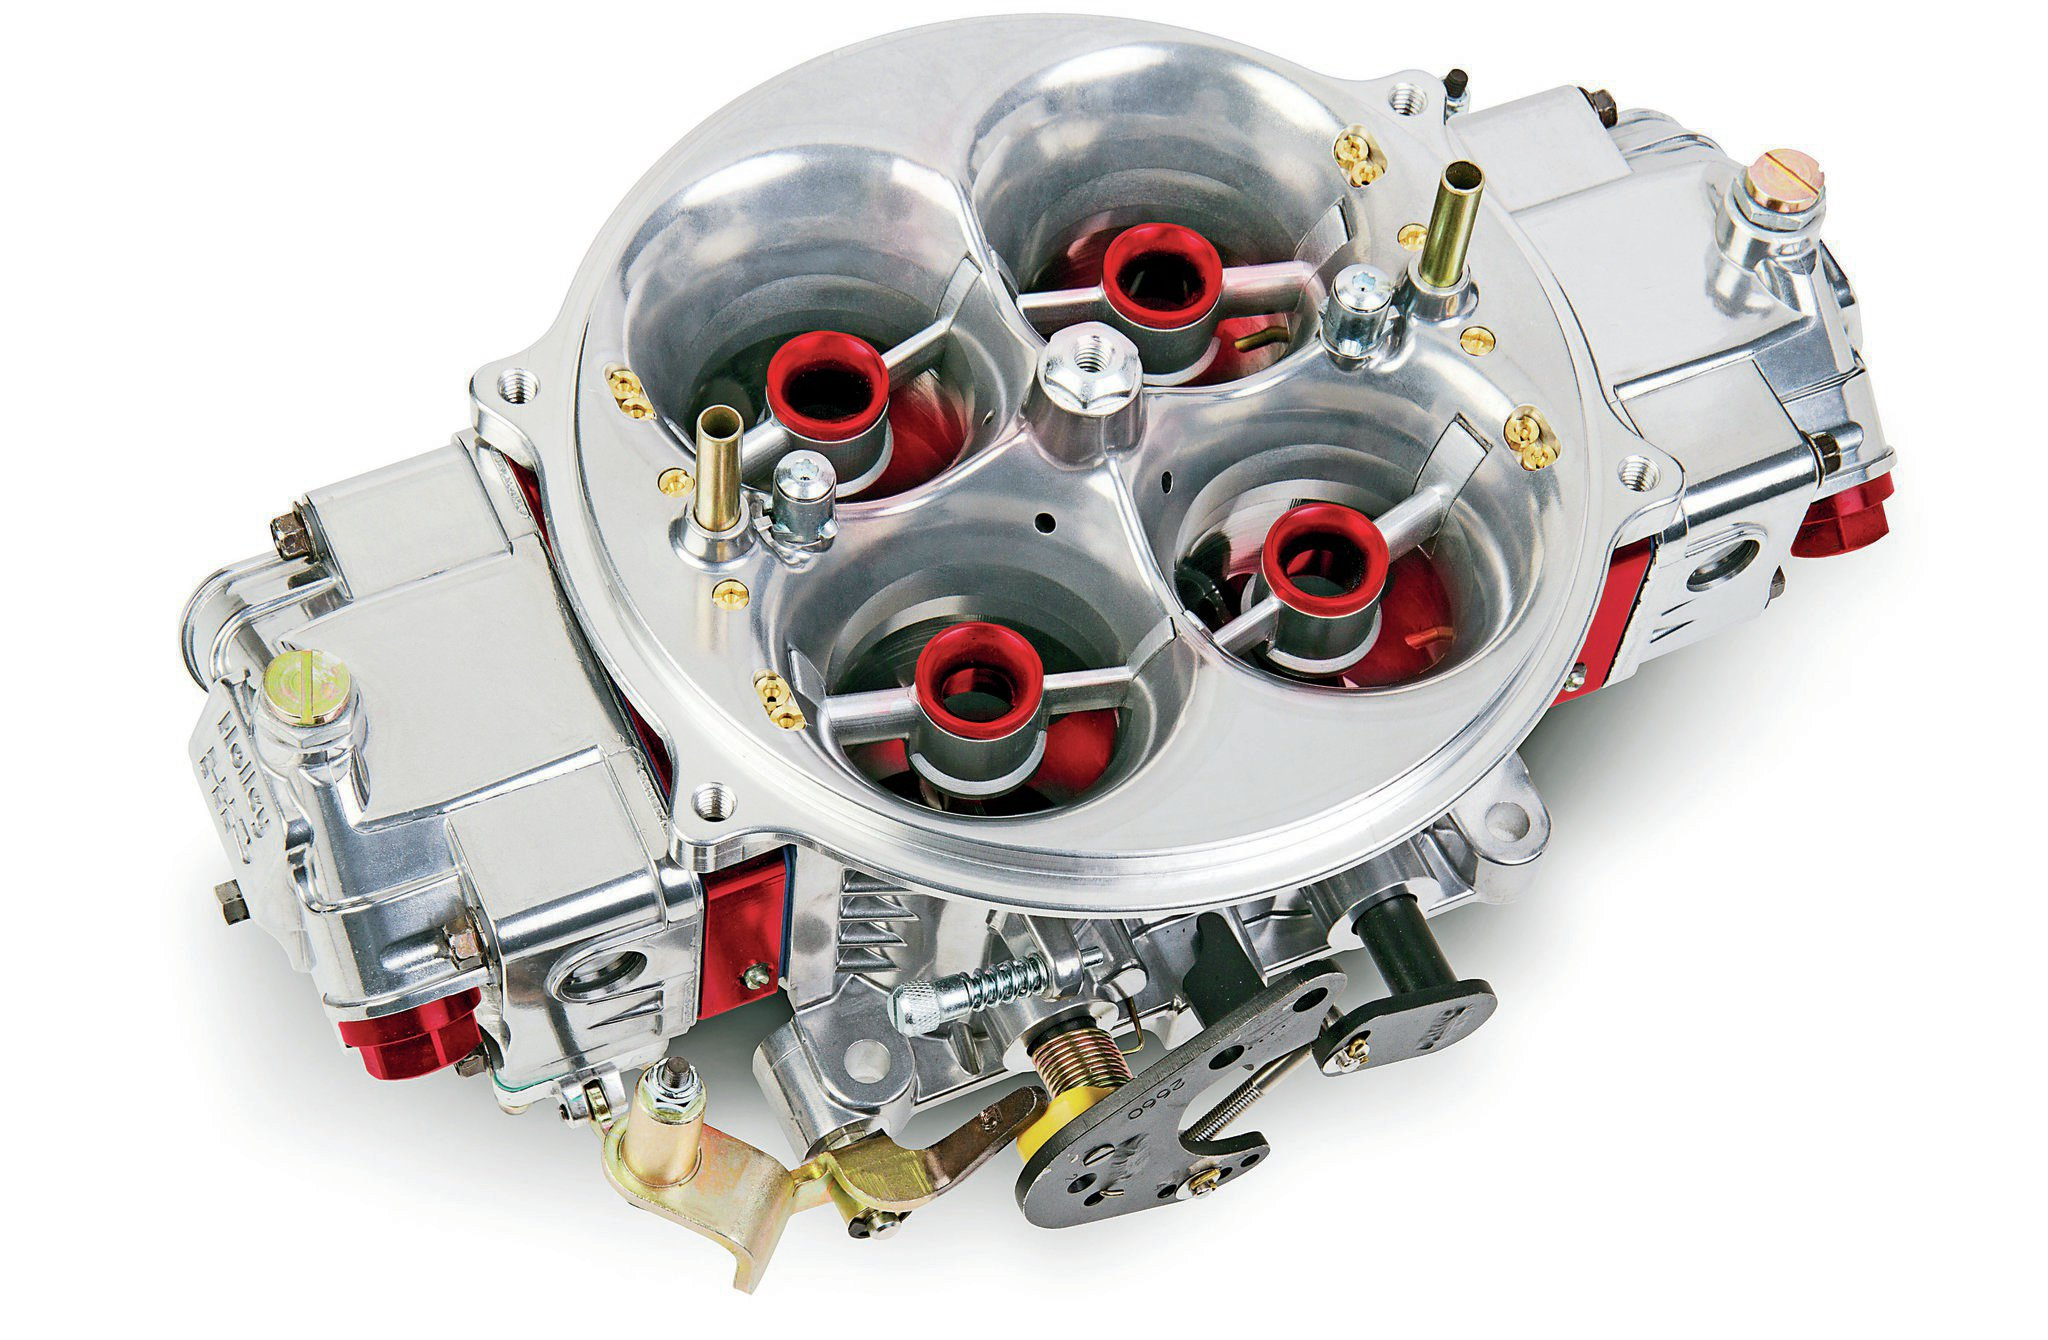 Most of us will probably never need Holley's biggest and baddest carb: the 1,475-cfm Gen 3 Ultra Dominator.